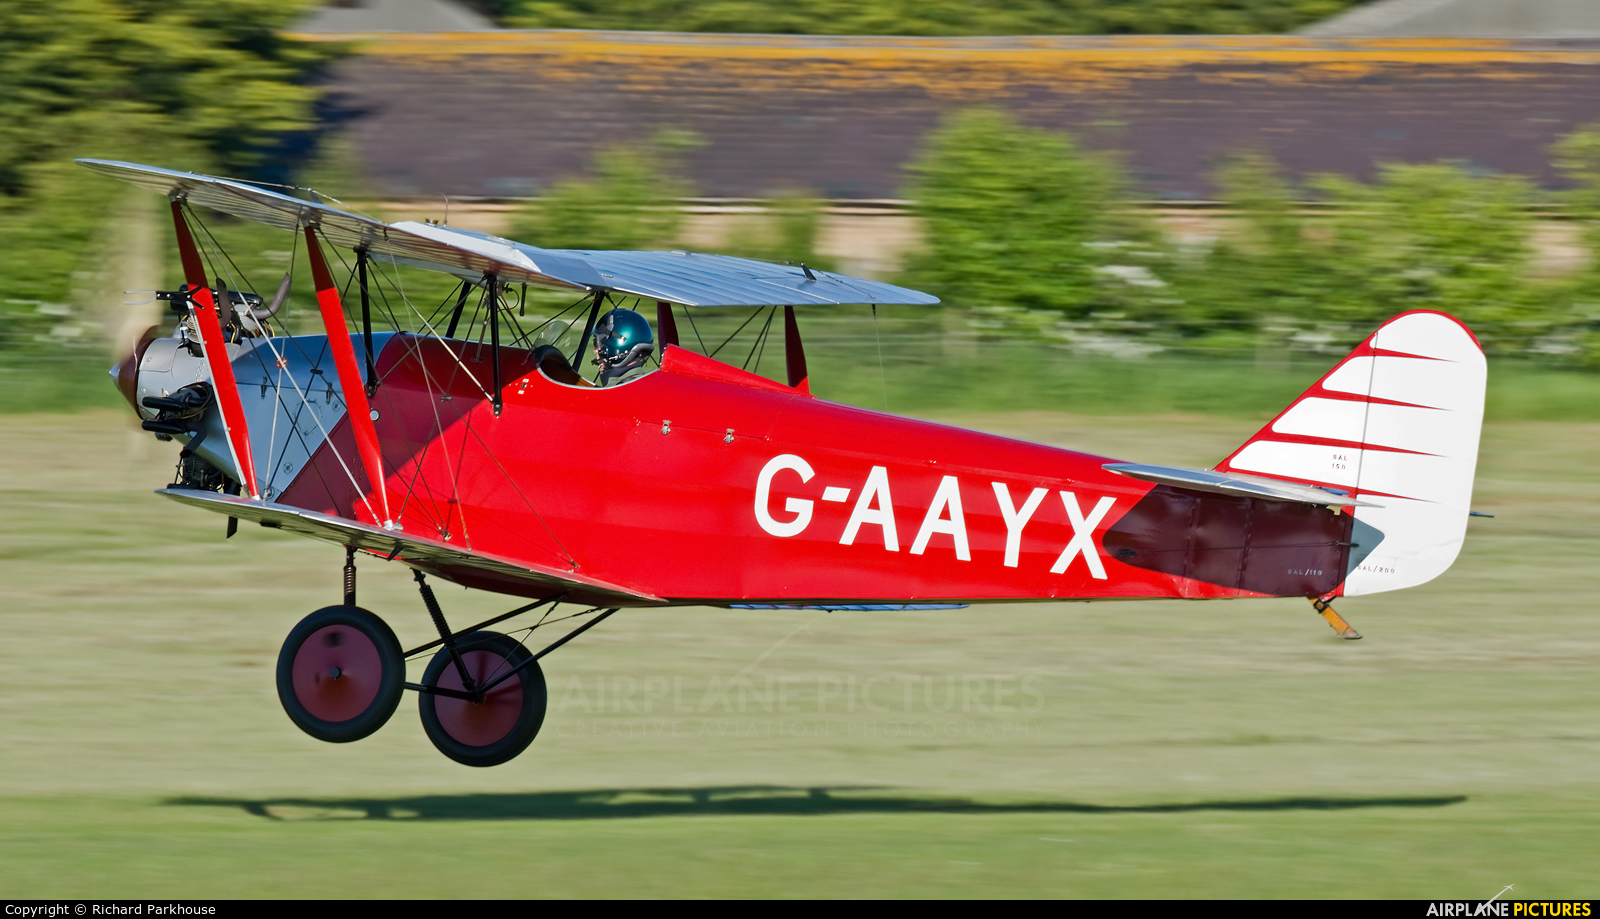 The Shuttleworth Collection G-AAYX aircraft at Old Warden